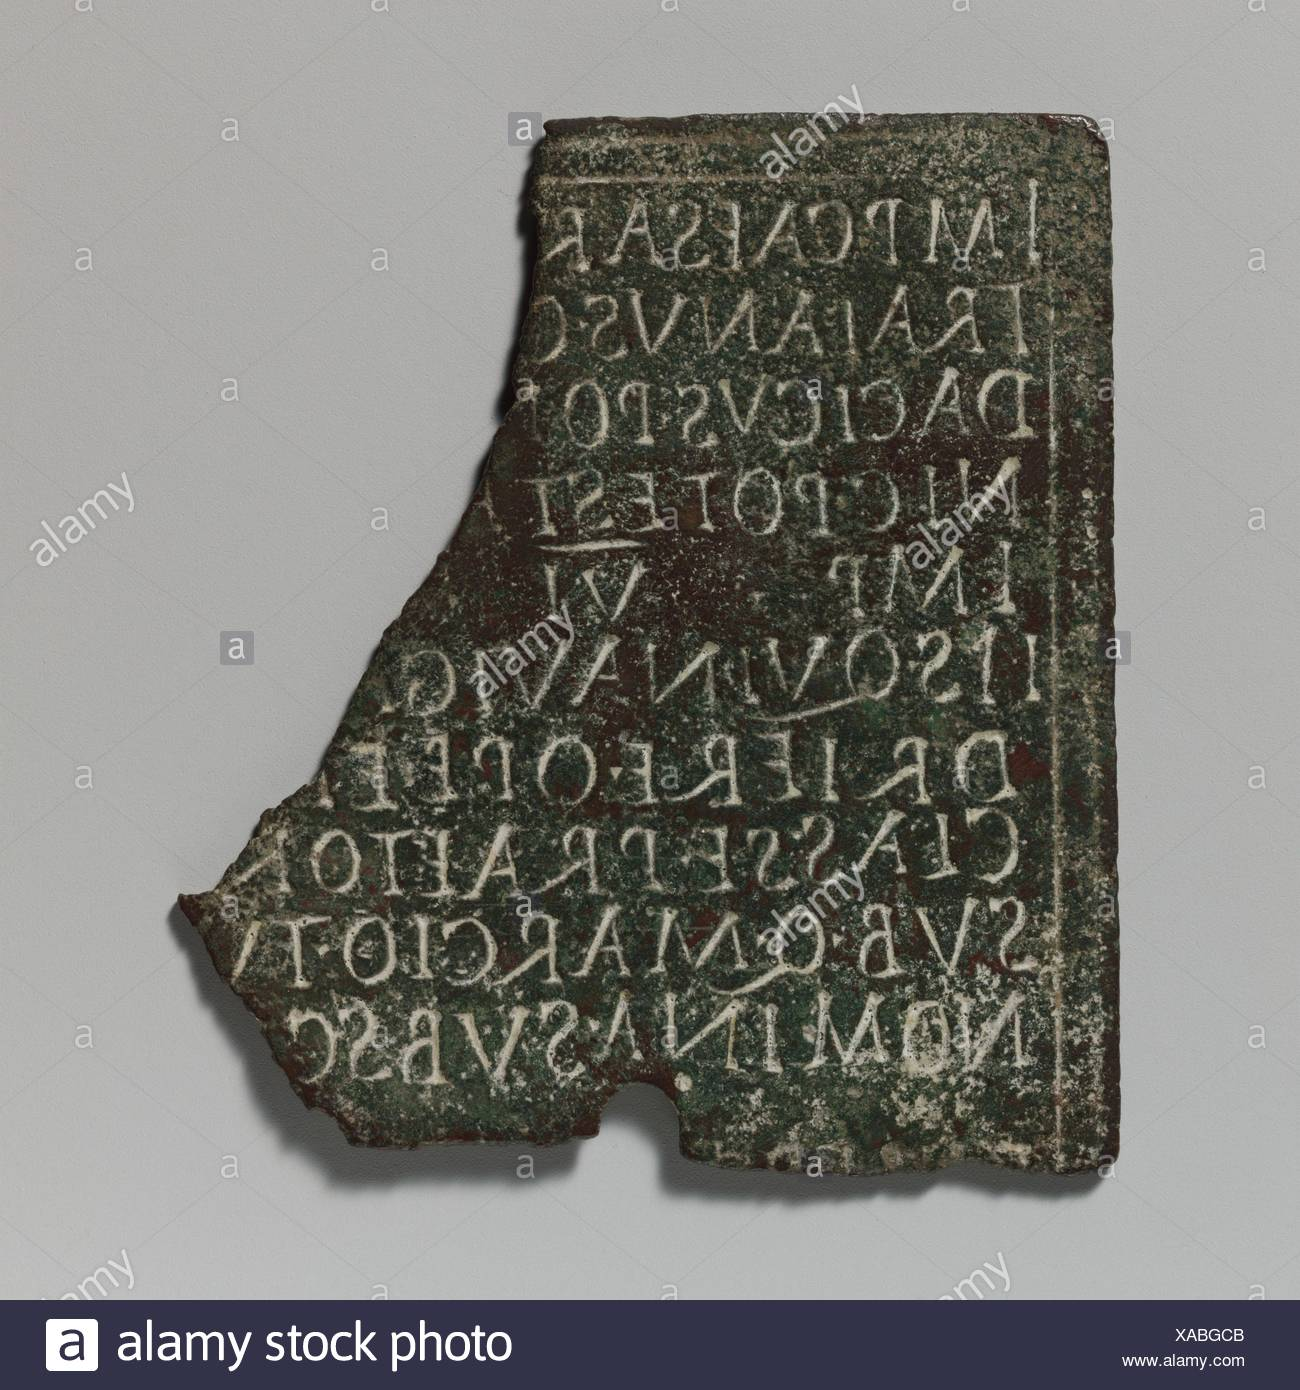 Ic 1 And 2 Stock Photos Images Alamy The Iron Bar In Uquot Shape With Dimensions As Shown Diagram Fragment Of A Bronze Military Diploma Period Mid Imperial Trajanic Date